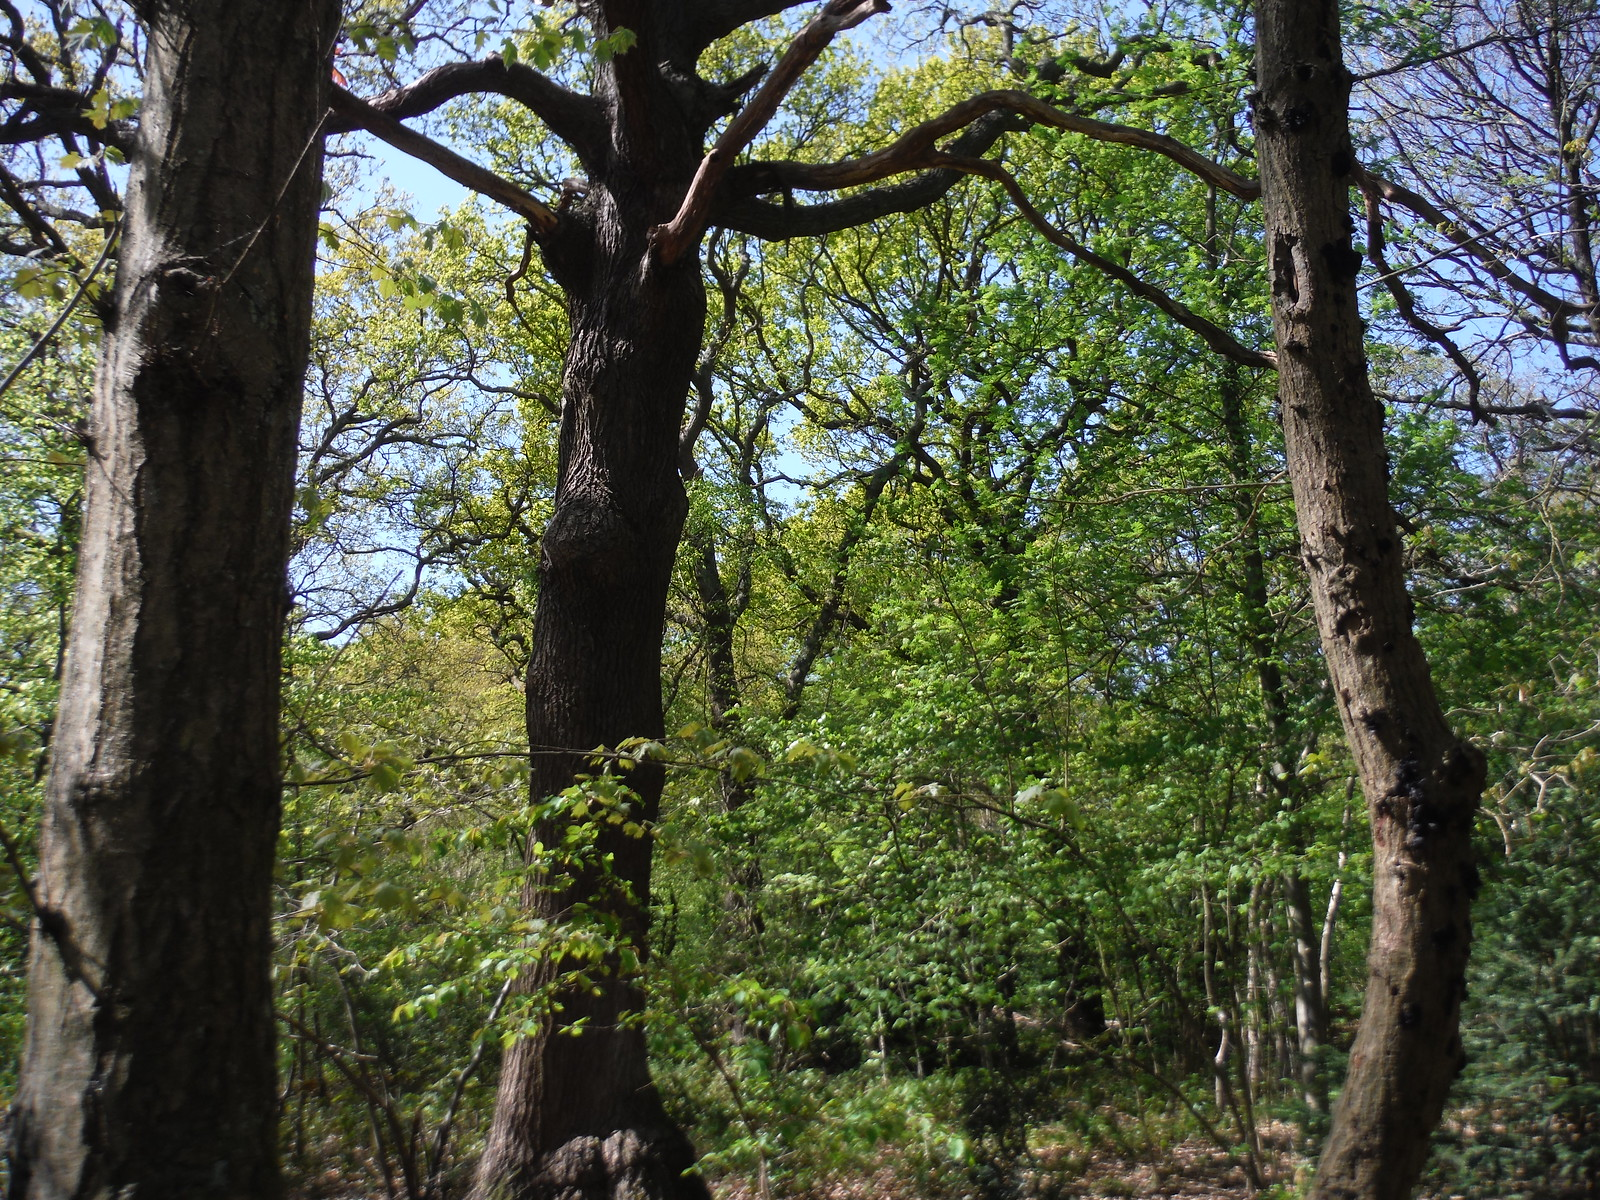 Trees in Oxleas Wood SWC Short Walk 44 - Oxleas Wood and Shooters Hill (Falconwood Circular)